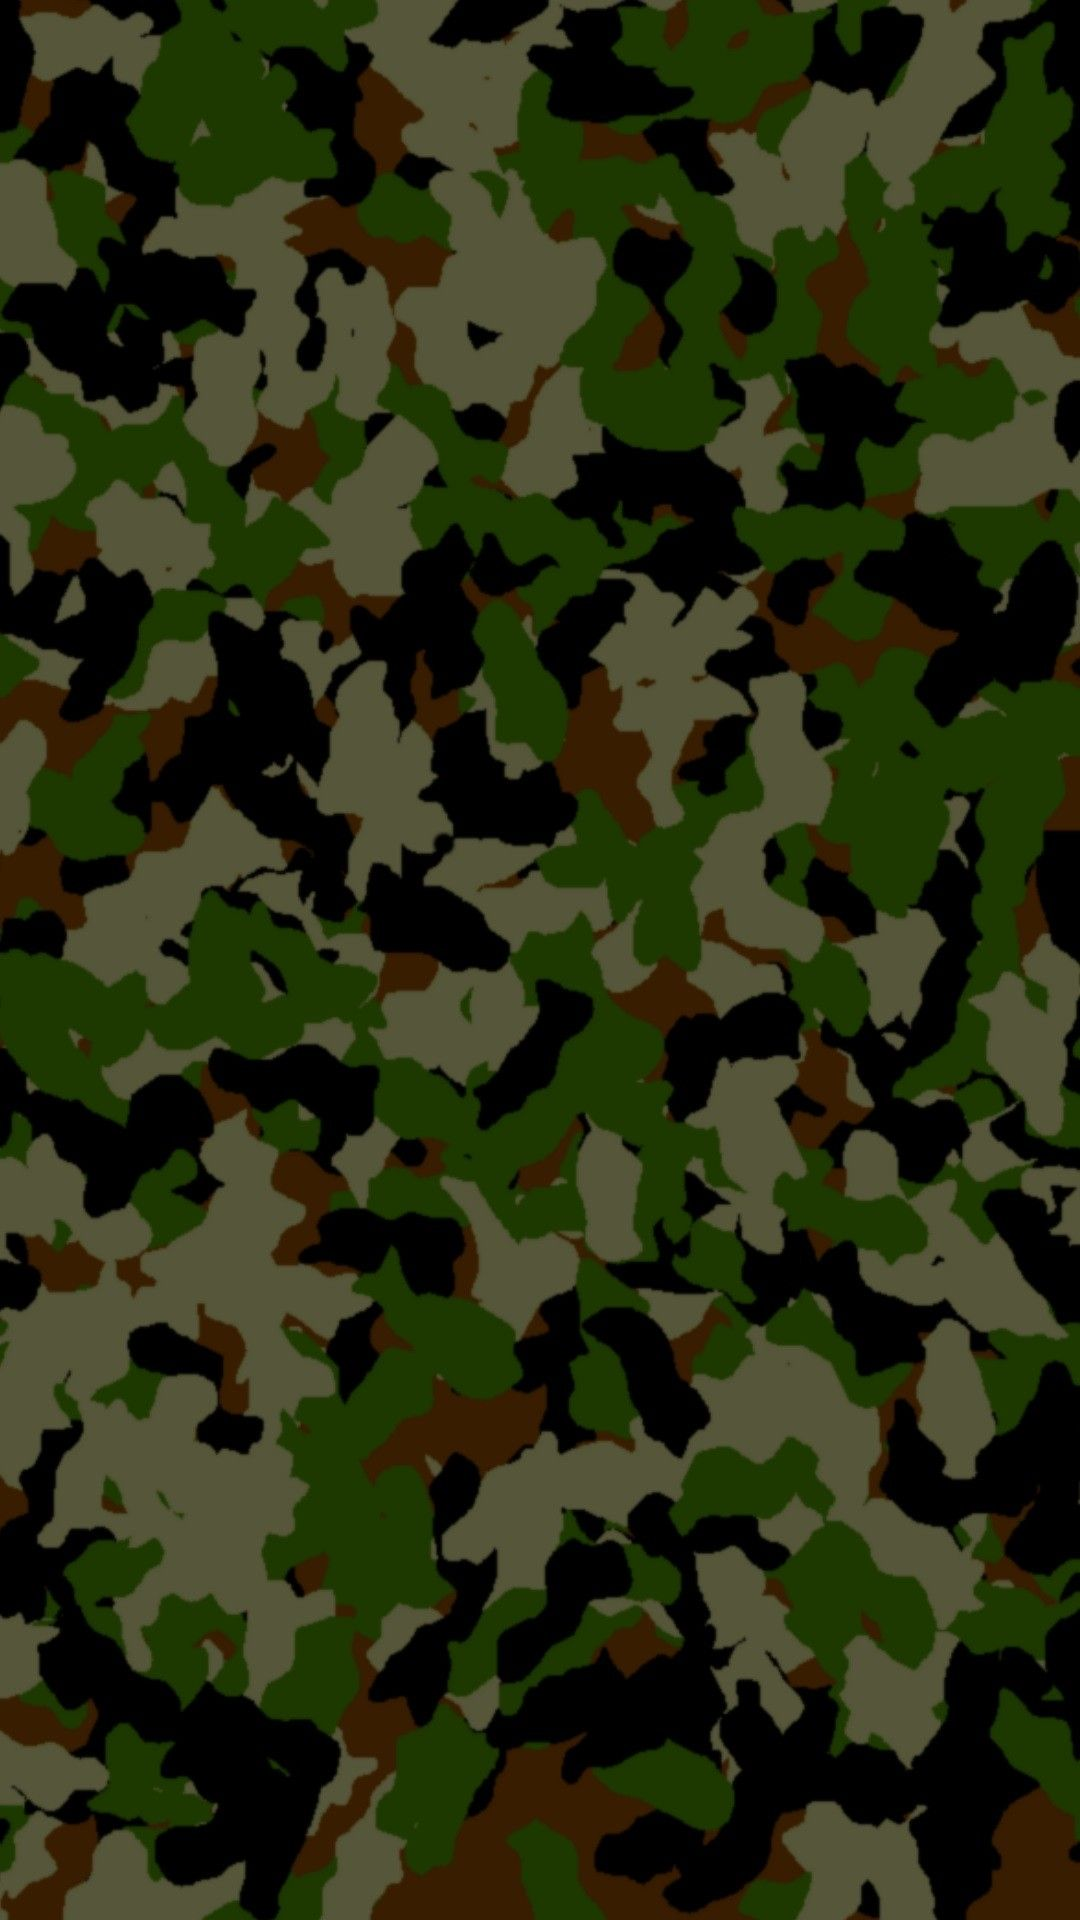 1080x1920 camouflage wallpaper 183 free hd wallpapers in 2019 | Camo ...